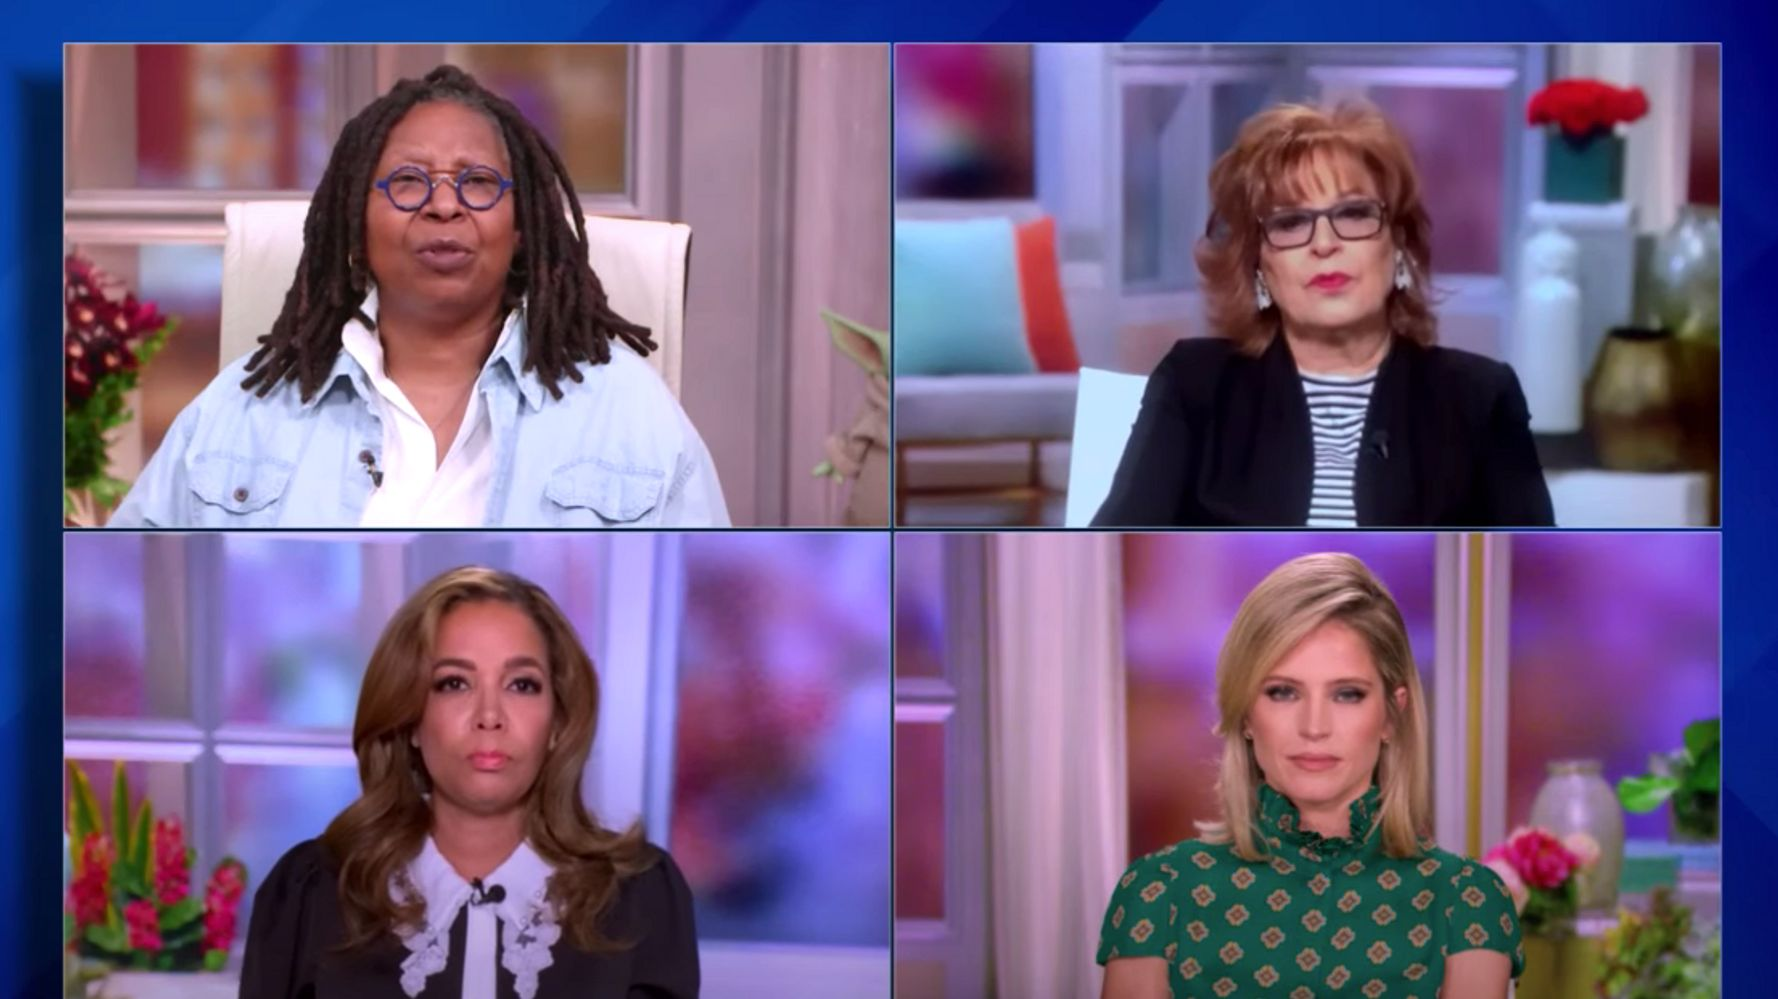 'The View' Shreds Trump COVID-19 Adviser's Baffling Thanksgiving Advice